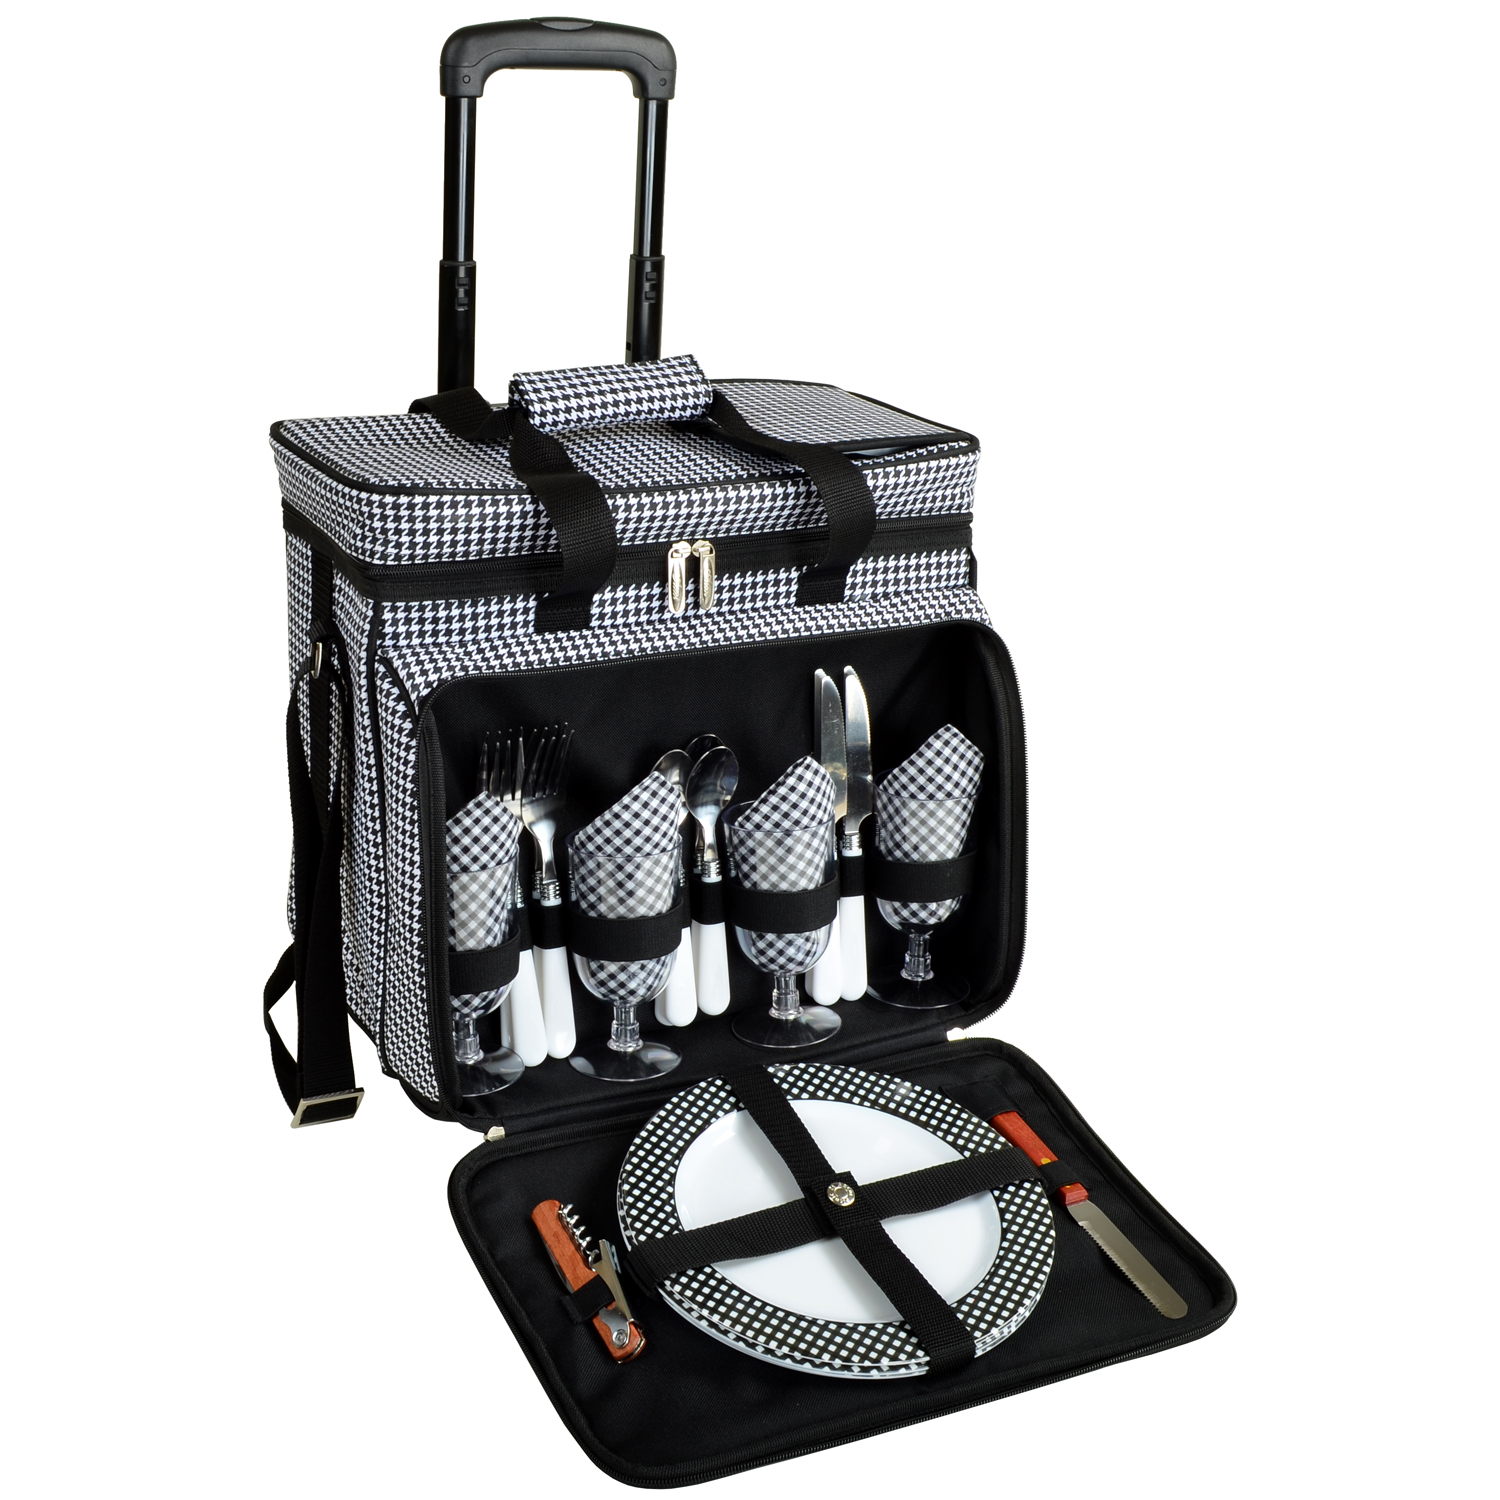 Picnic At Ascot Equipped Picnic Cooler With Service For 4